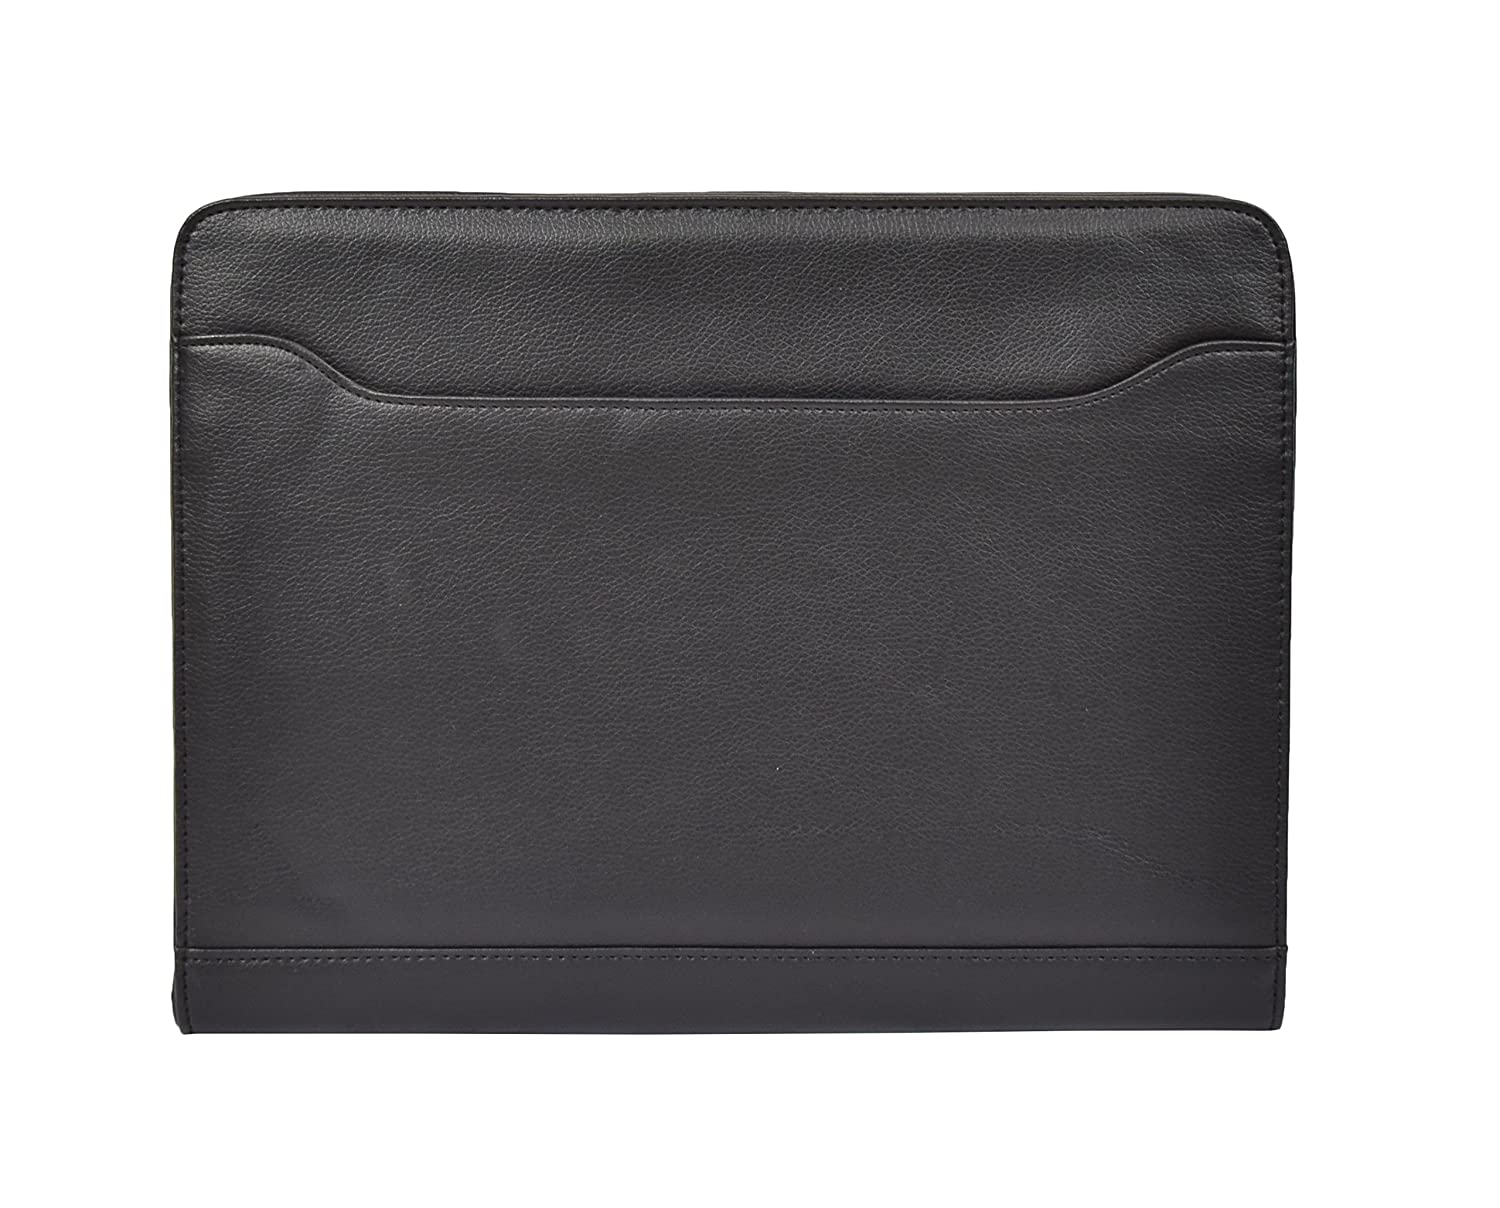 A4 Leather Look Underarm Zip Around Black Folio Bag With Calculator And Notepad - Caleb Caleb Black